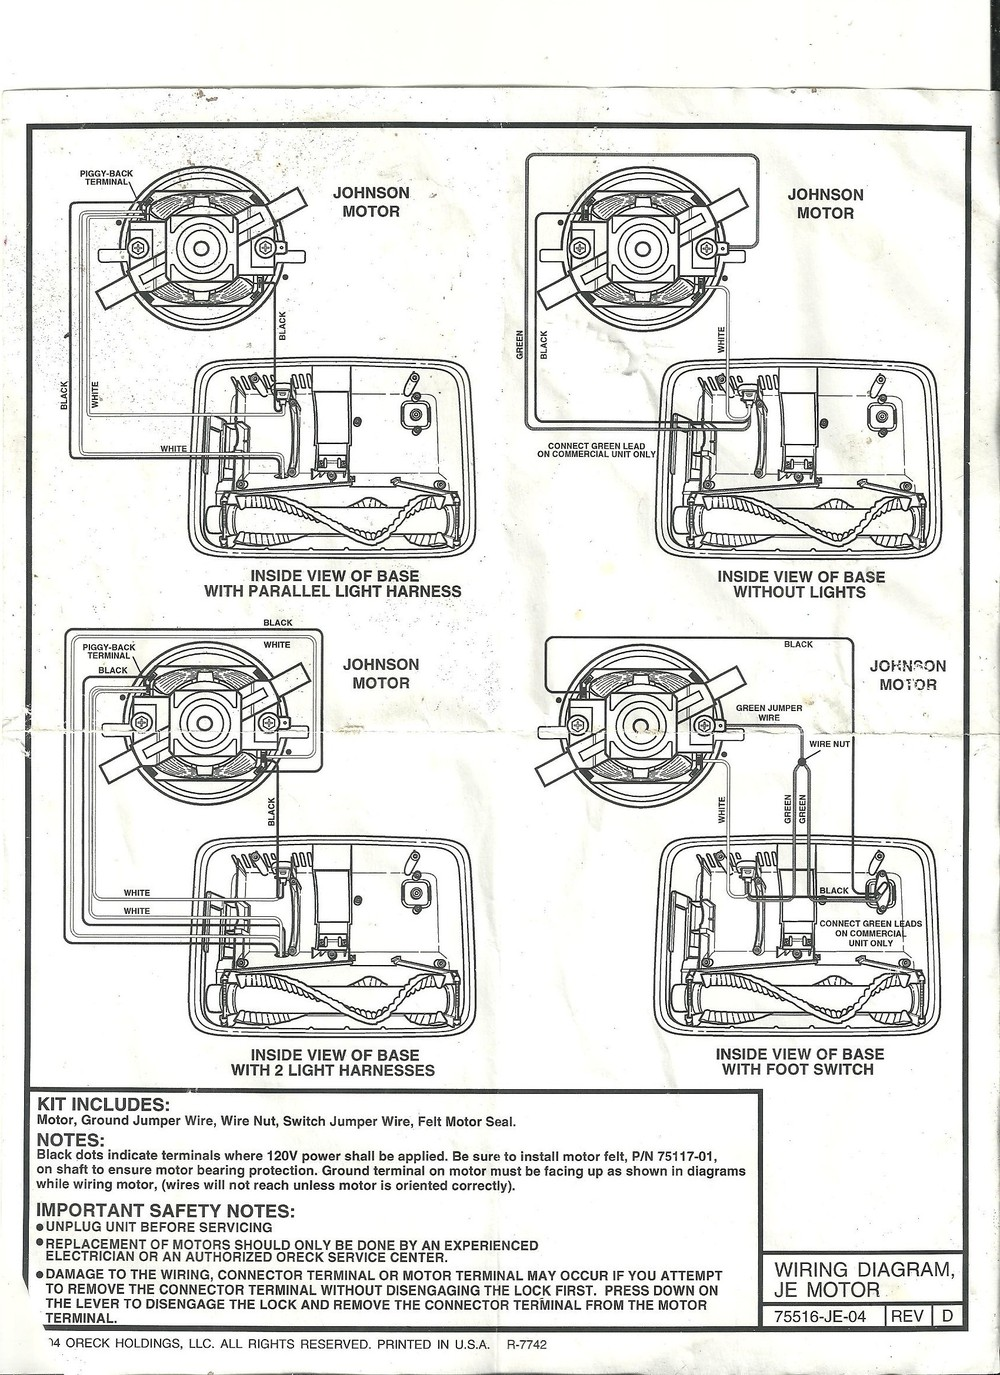 super sweeper++7 28 2014 19 03 49 help me!!! oreck xl2 motor wireing oreck vacuum motor wiring diagram at suagrazia.org